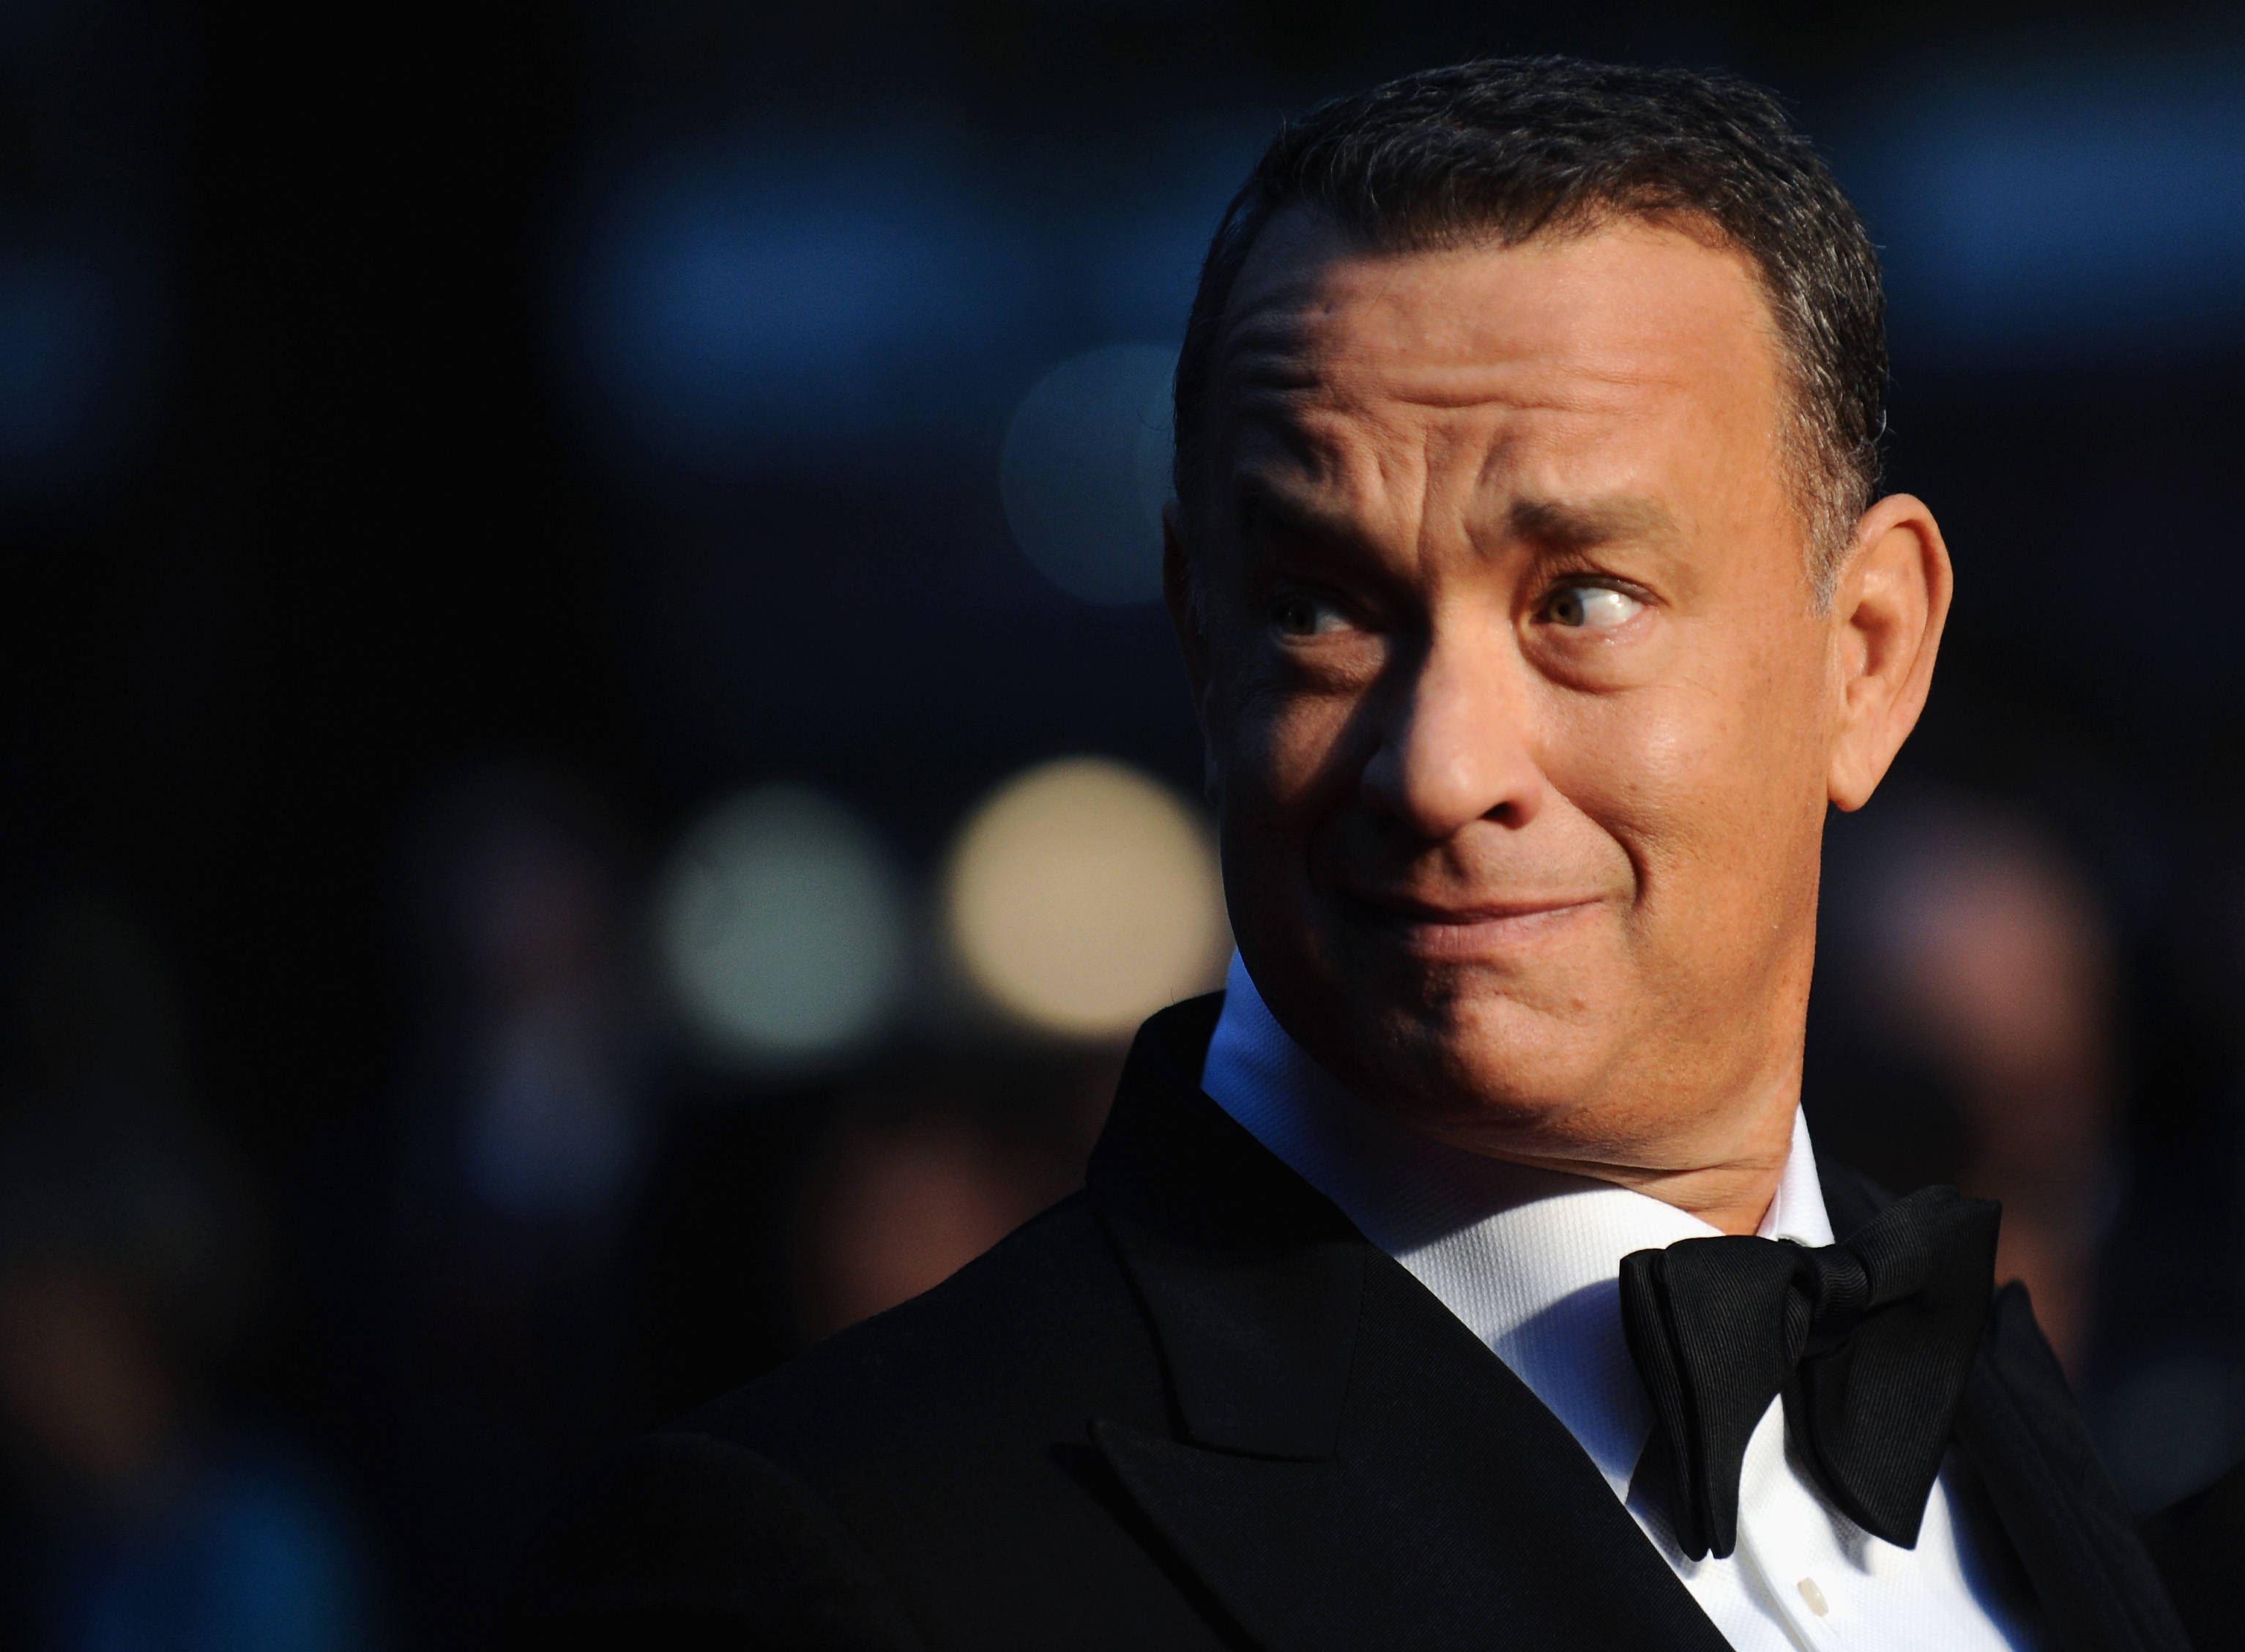 Tom Hanks Photos Images for iPhone